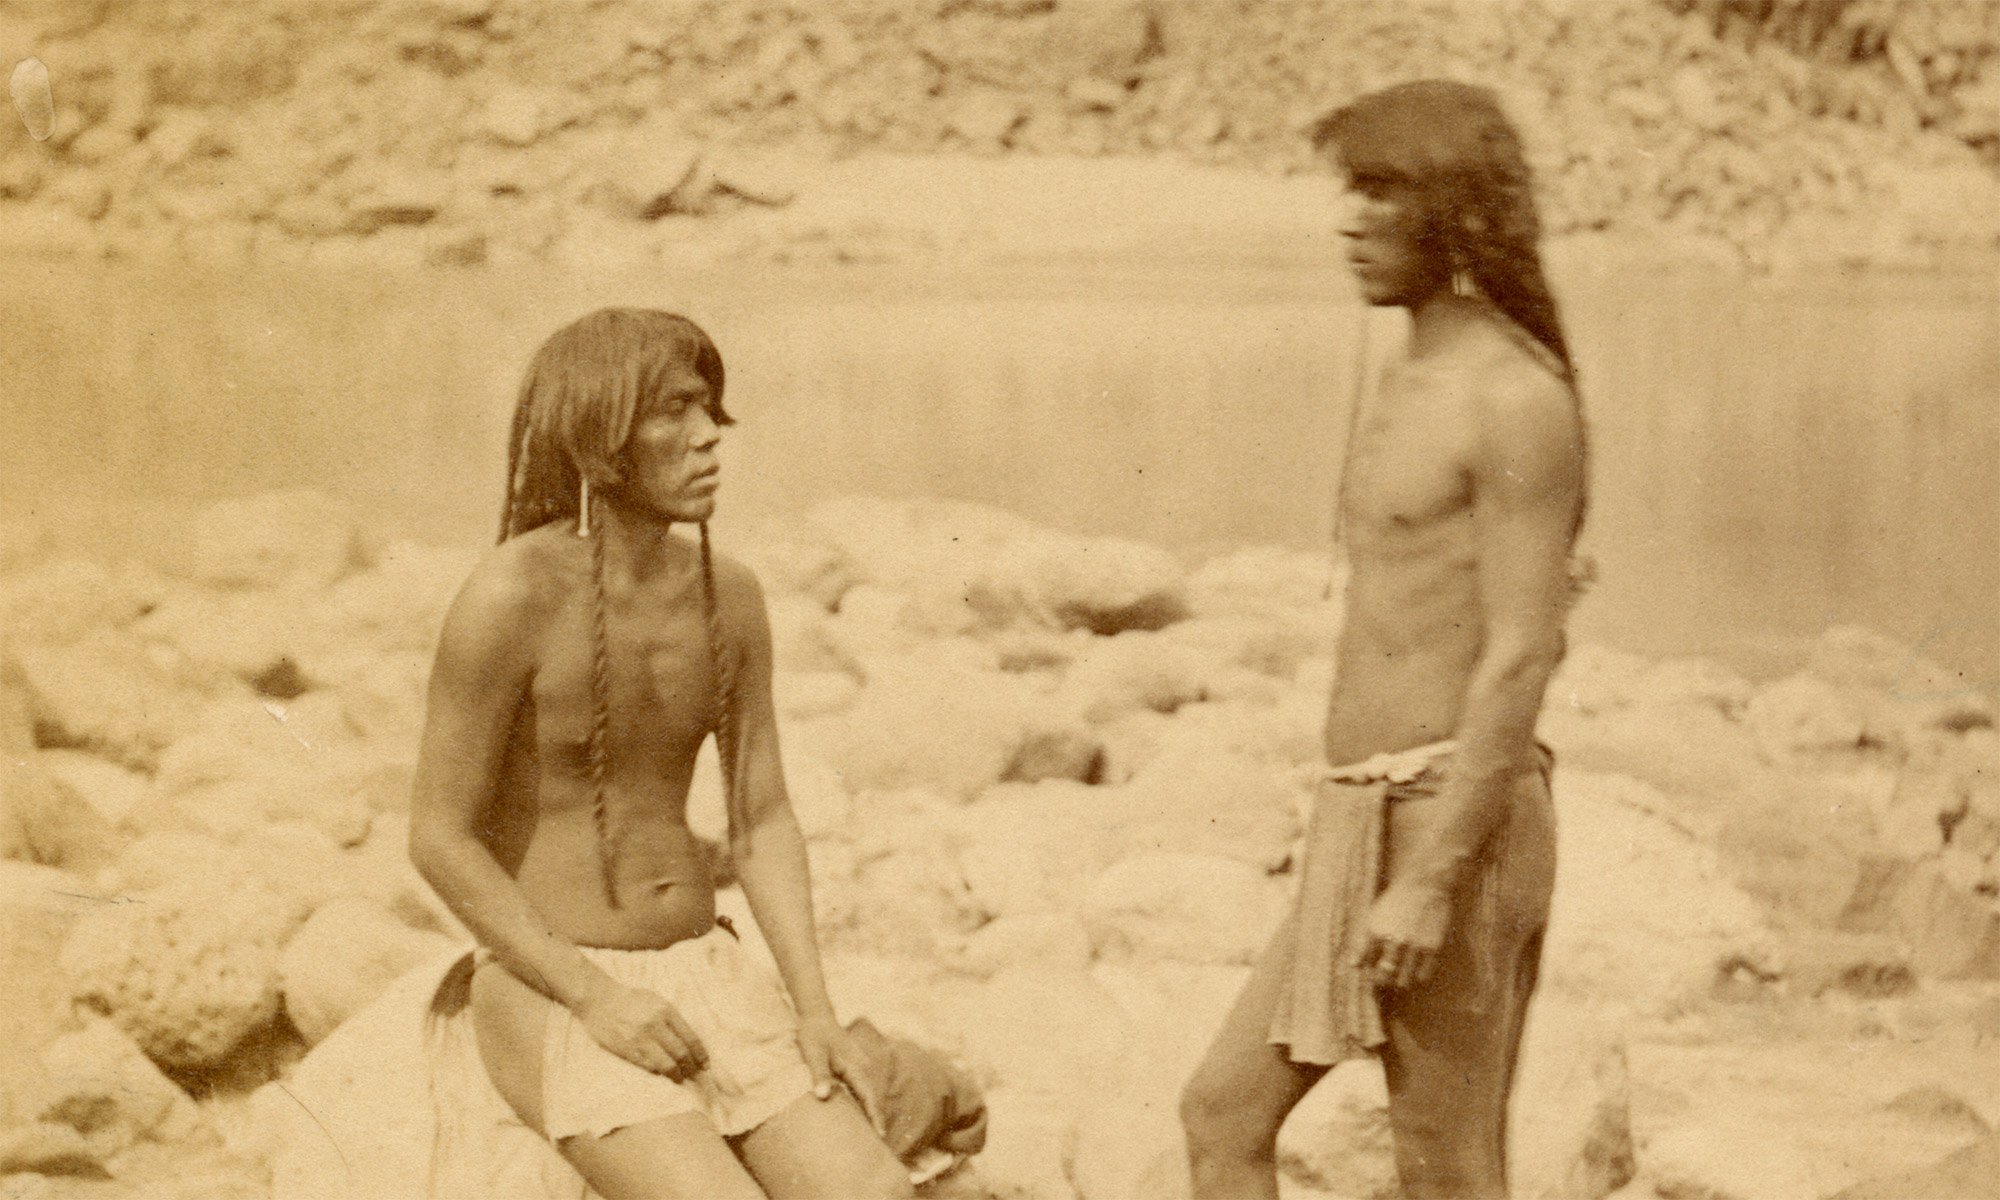 Header image depicting Mohave Indians, taken on the 1871 Wheeler Expedition, during which the Wickenburg Massacre occurred